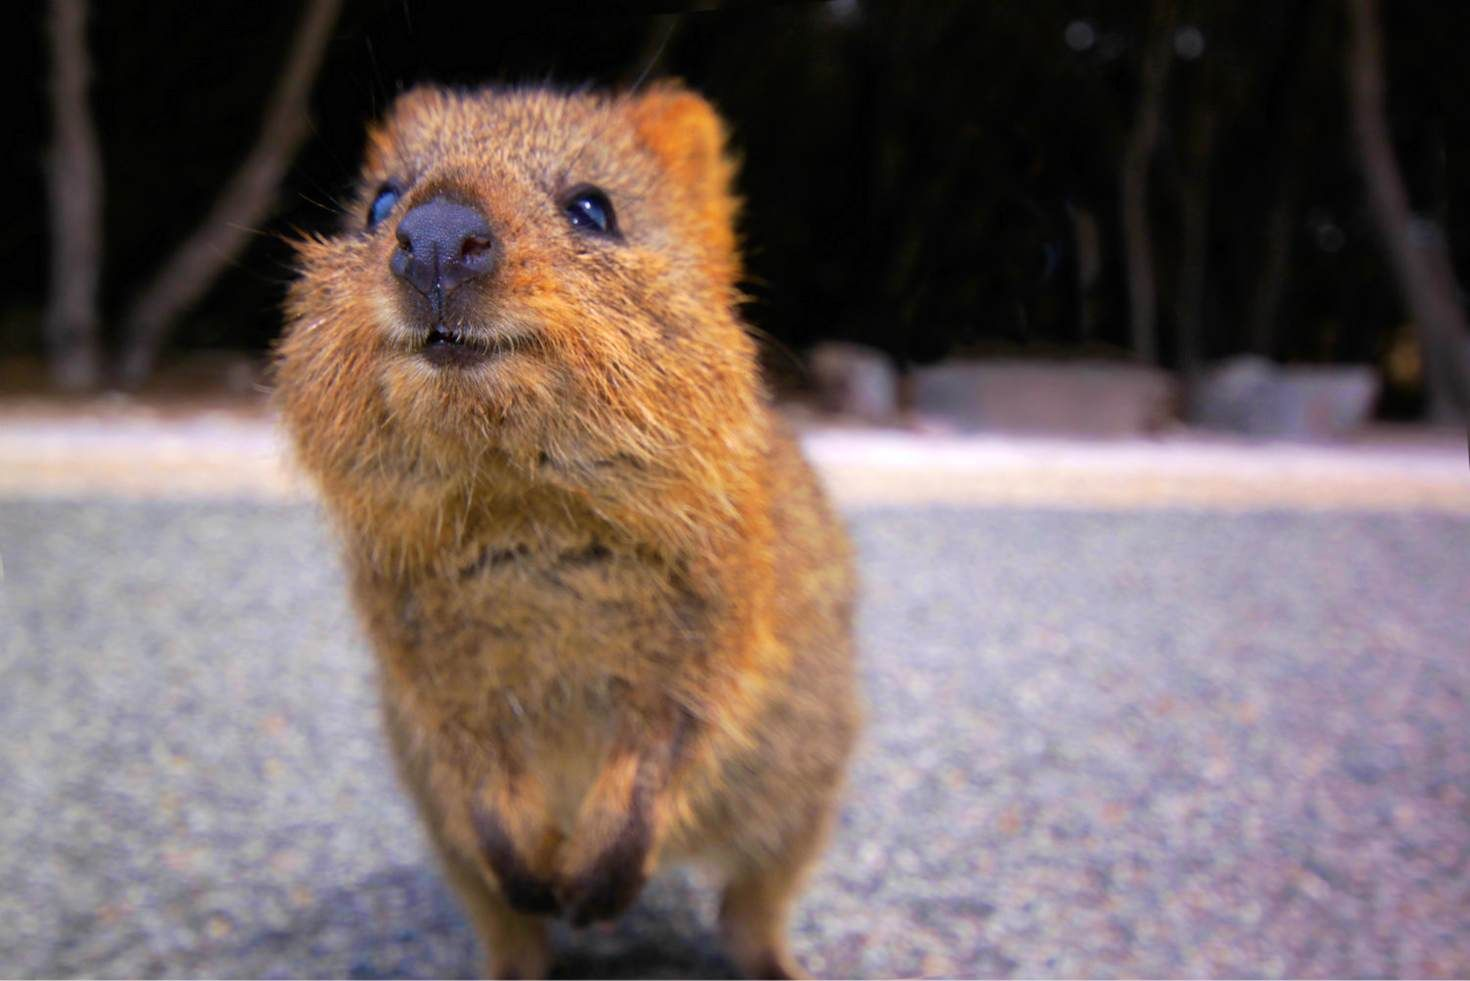 Quokkas on Rottnest Island, AUSTRALIA. The first European to lay eyes on a quokka, in 1658, described it as 'a kind of rat as big as a common cat'. The critters are only found in a small area in Western Australia, flourishing on Rottnest Island where numbers have swollen to 12,000.